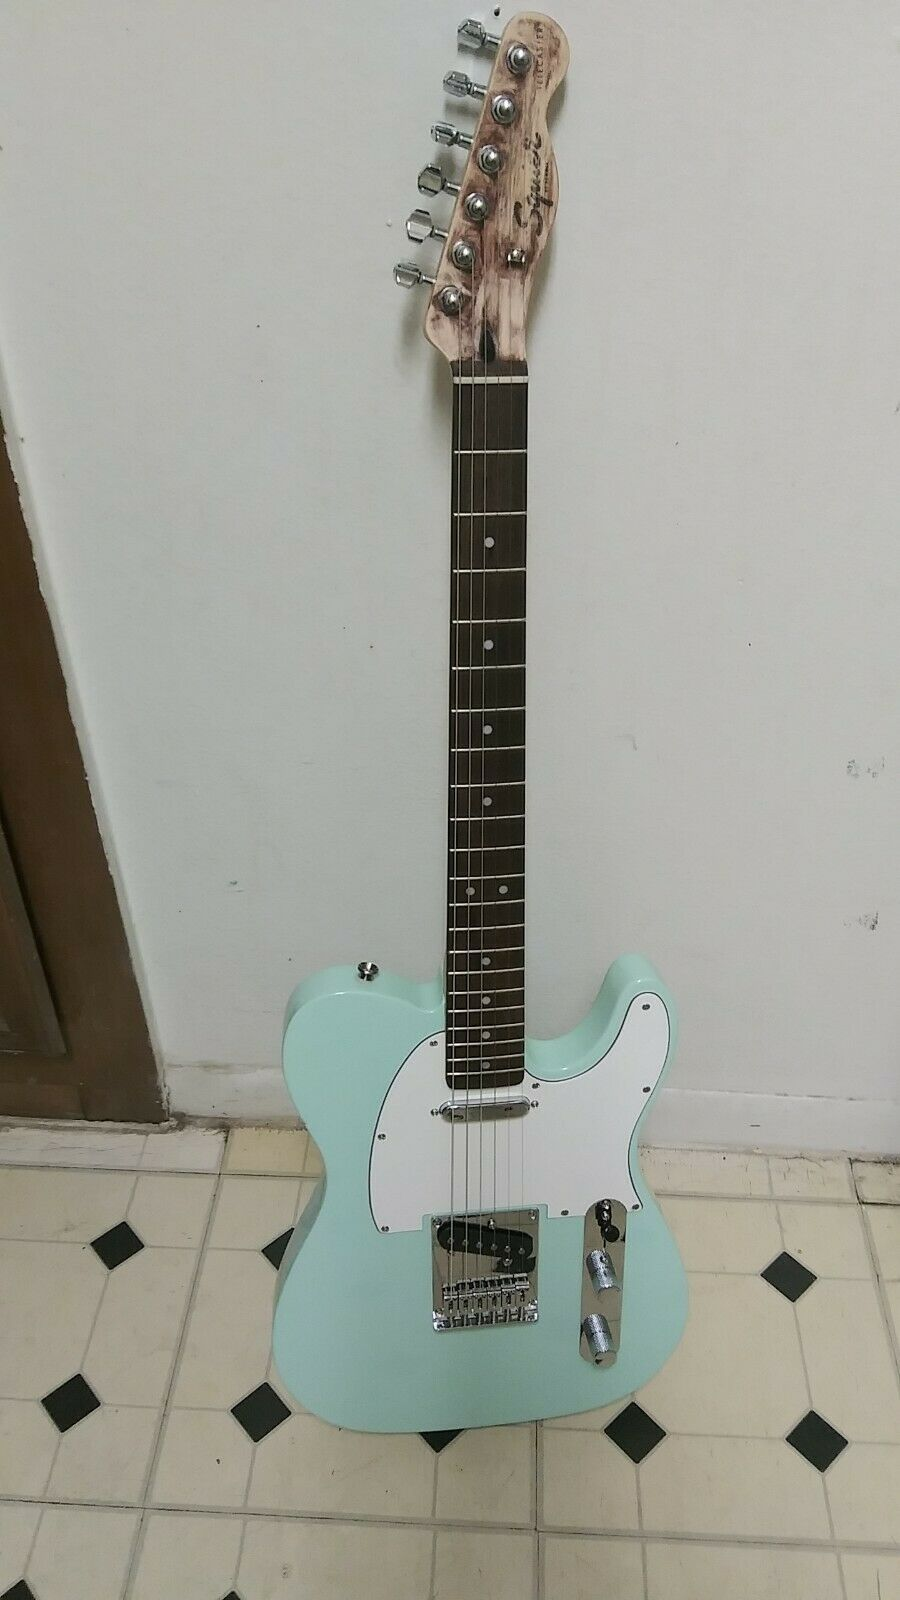 Fender Telecaster Squire Guitar S N ICS191889.ENTWICKLUNG IN INDONESIEN